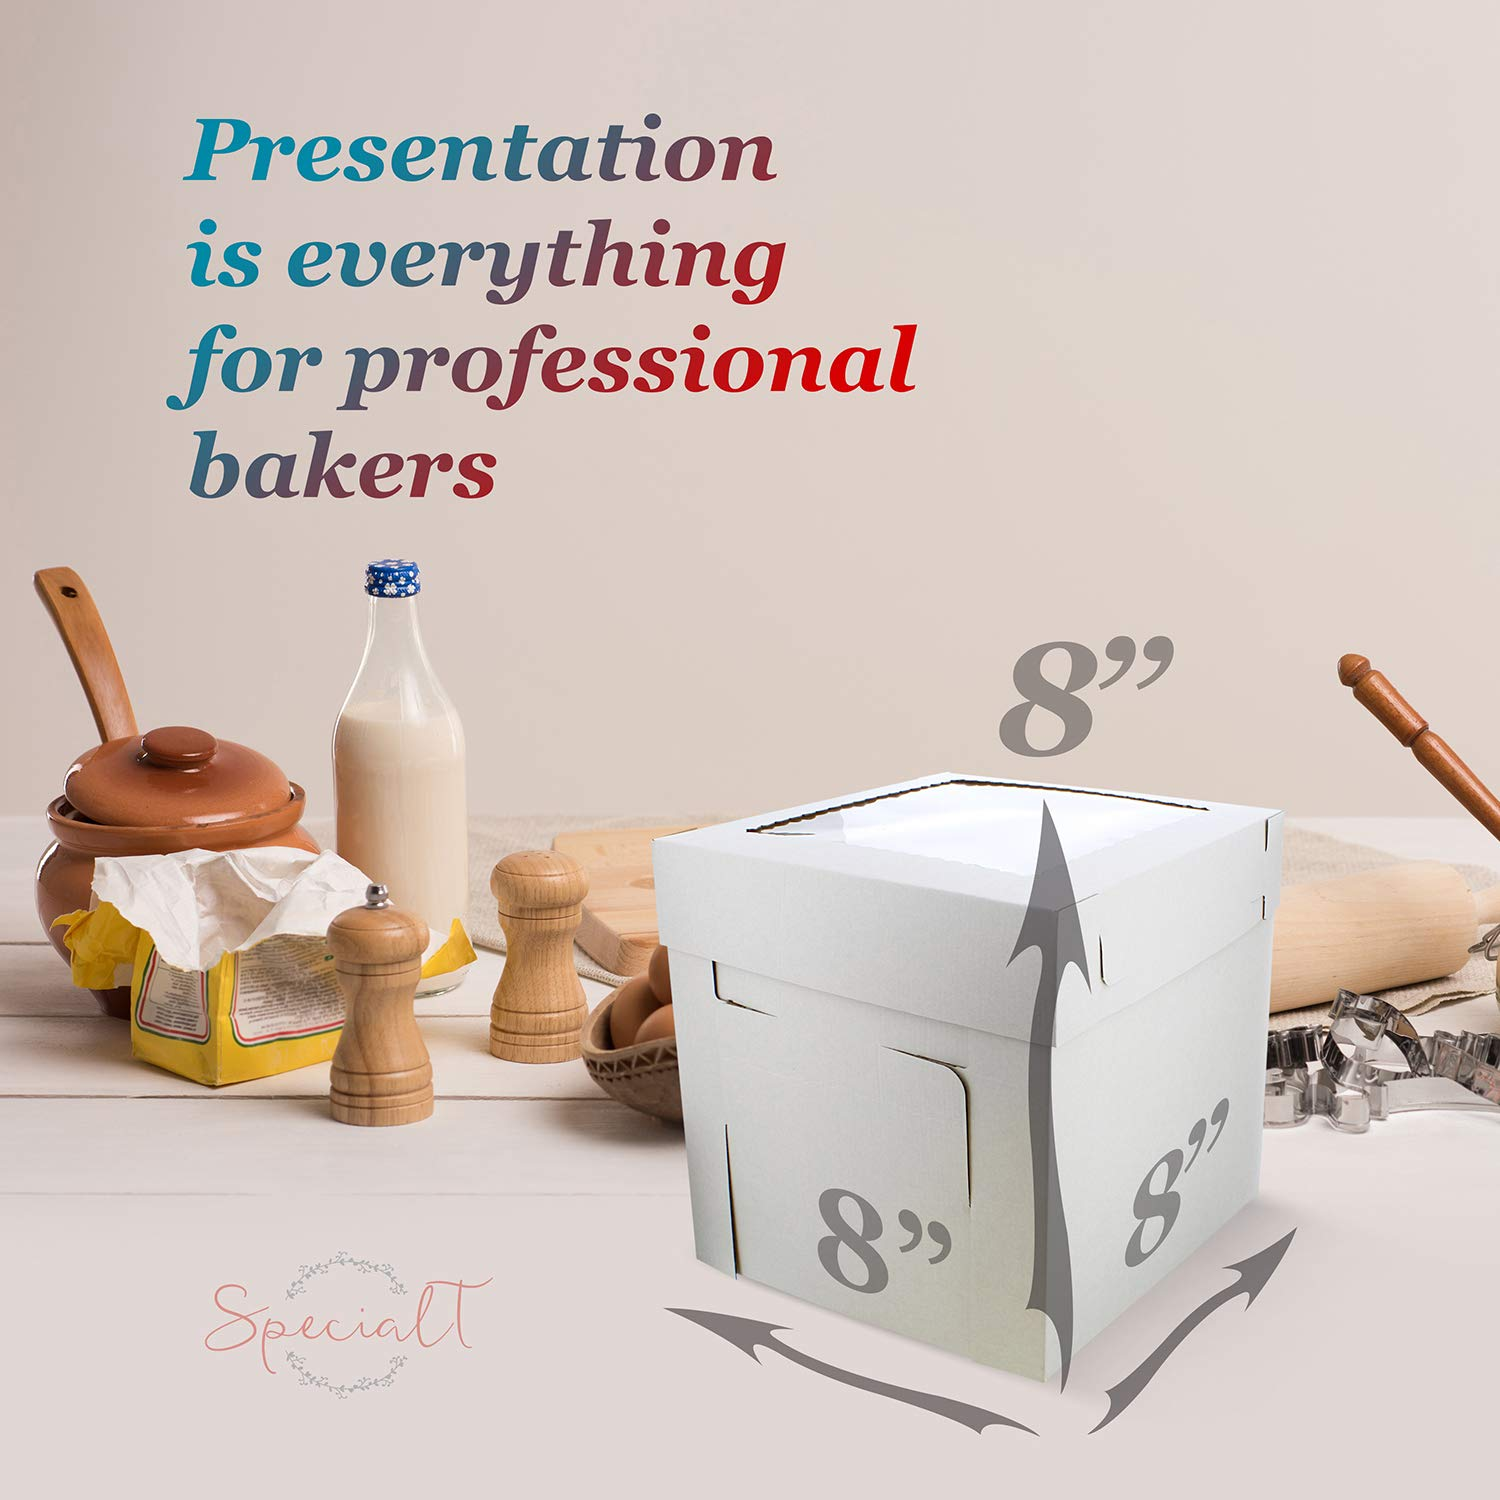 SpecialT Cake Boxes with Window 25pk 8'' x 8'' x 8'' Inch White Bakery Boxes, Disposable Cake Containers, Dessert Boxes by coolcha's (Image #4)